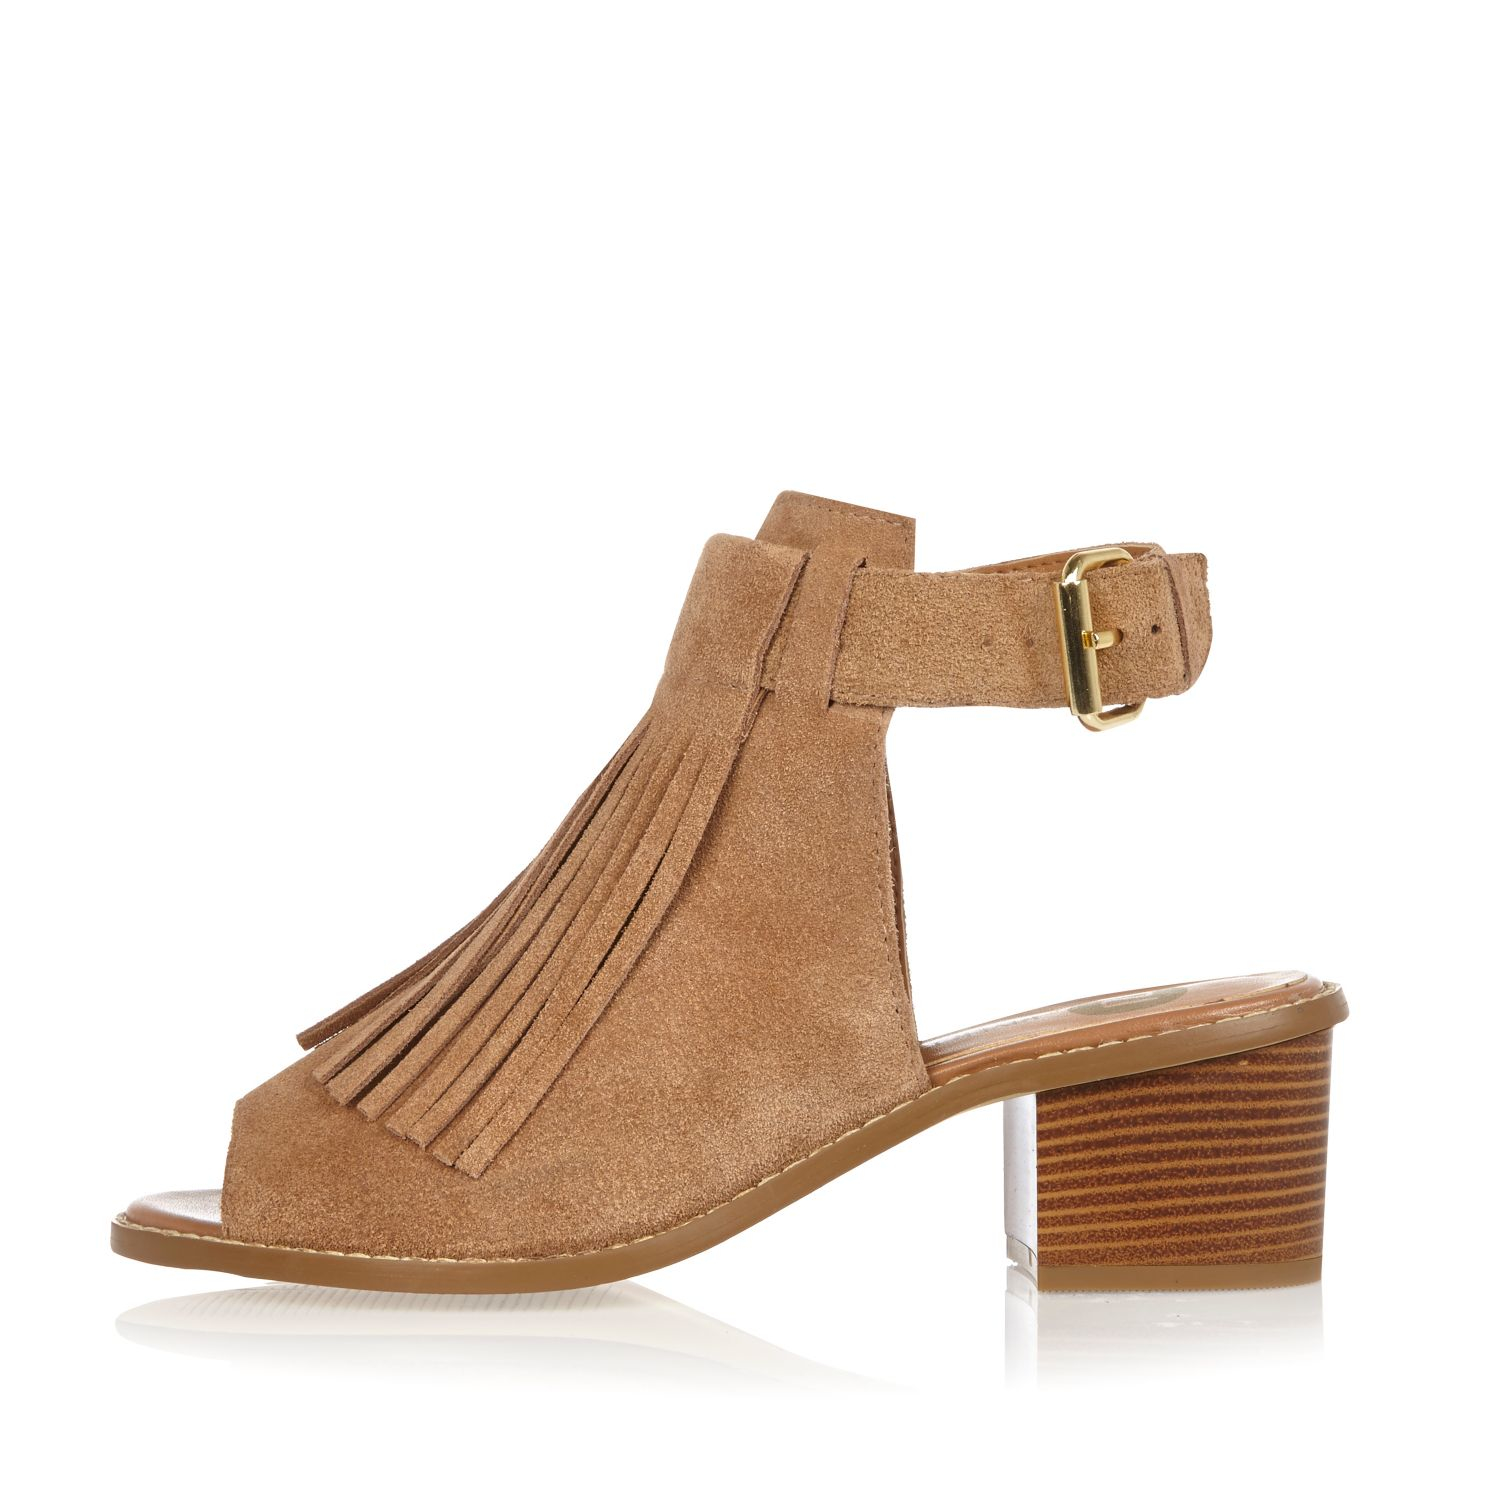 d3acb2e69ade Lyst - River Island Beige Suede Fringed Block Heel Sandals in Natural